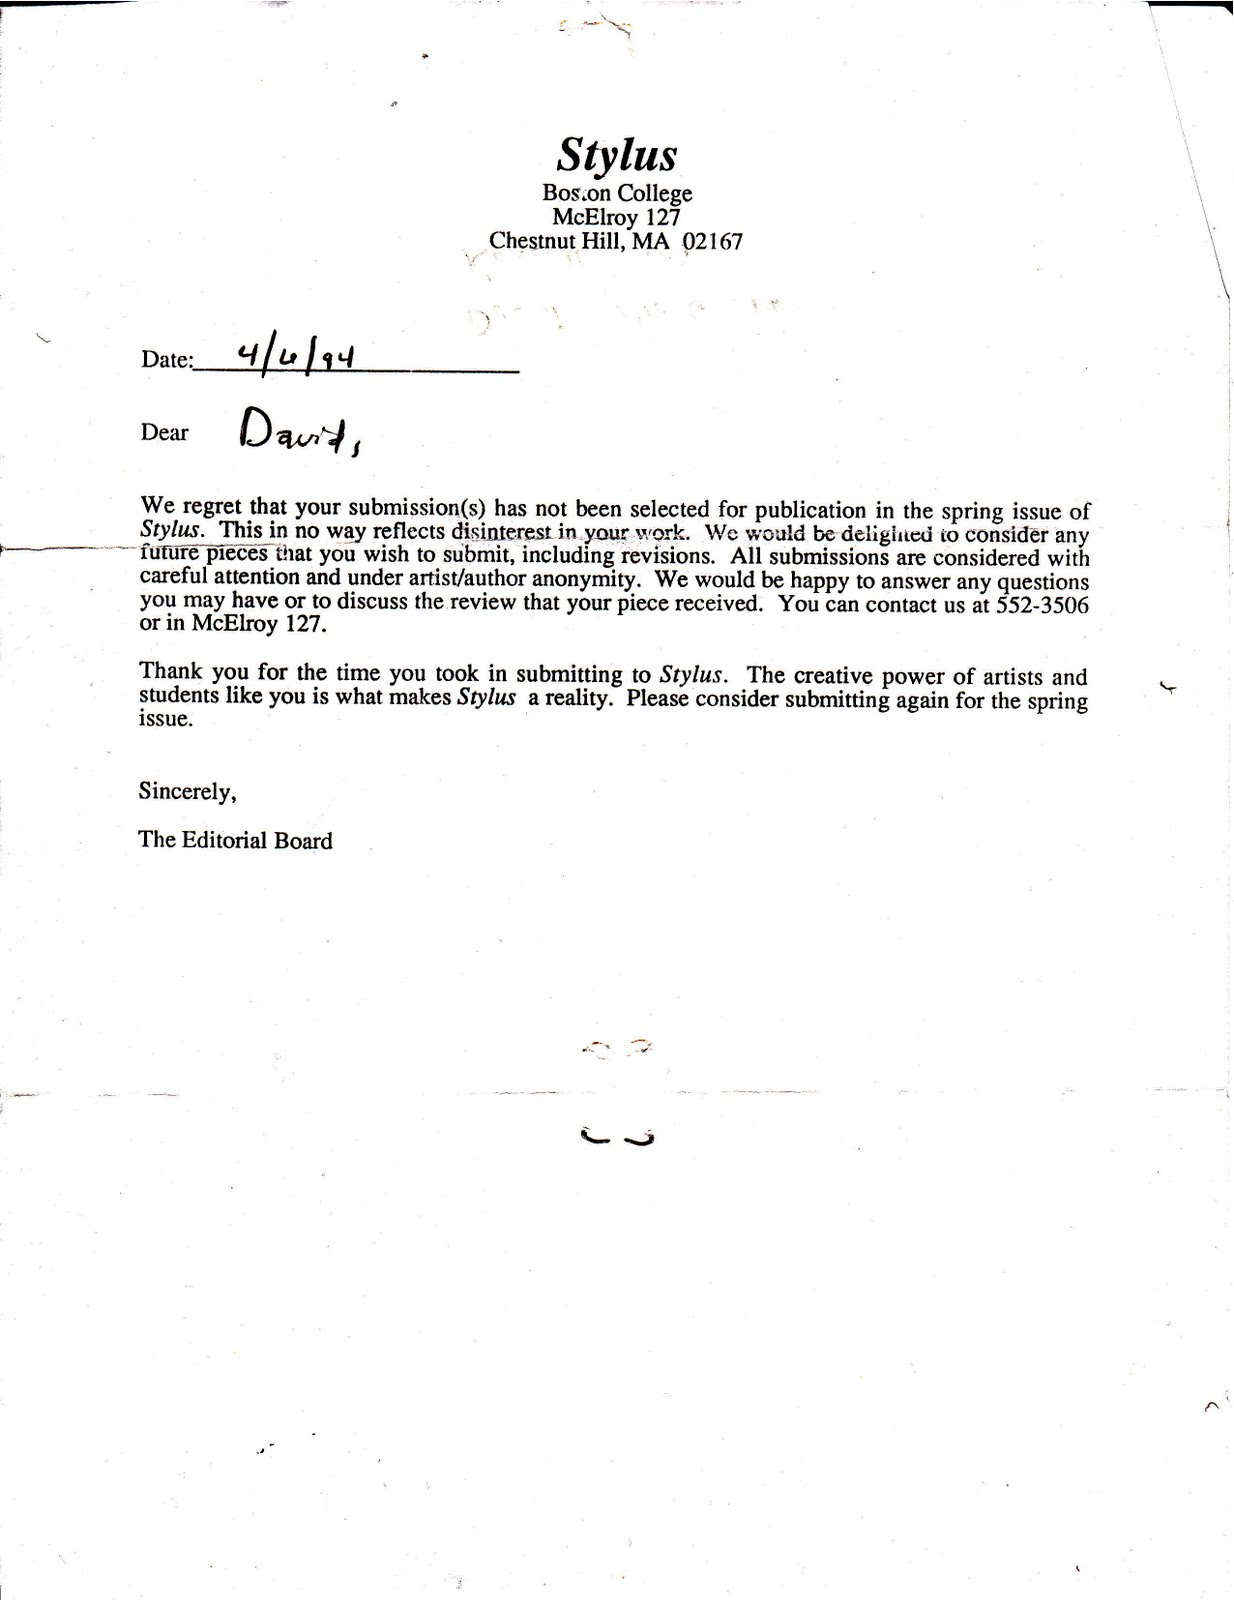 Boston College Rejection Letter